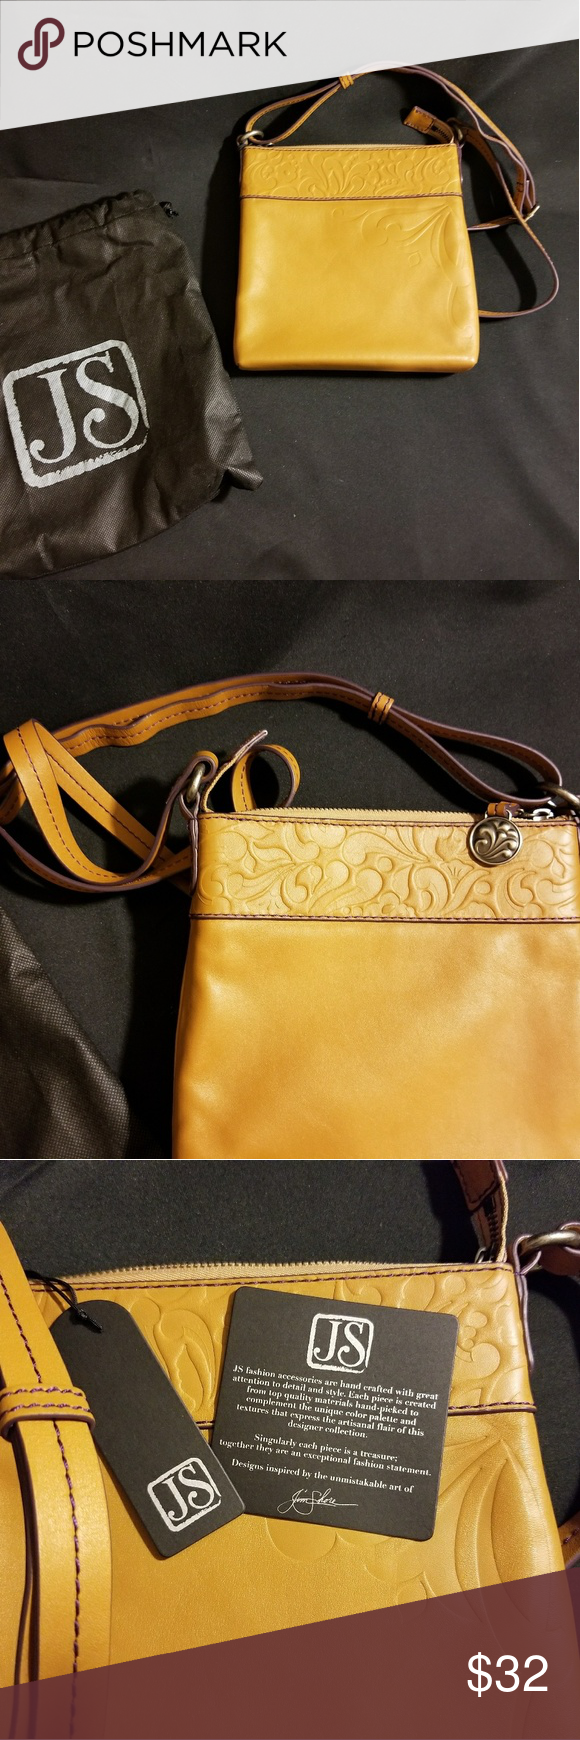 f1a6980785 Tan floral embossed genuine leather crossbody bag